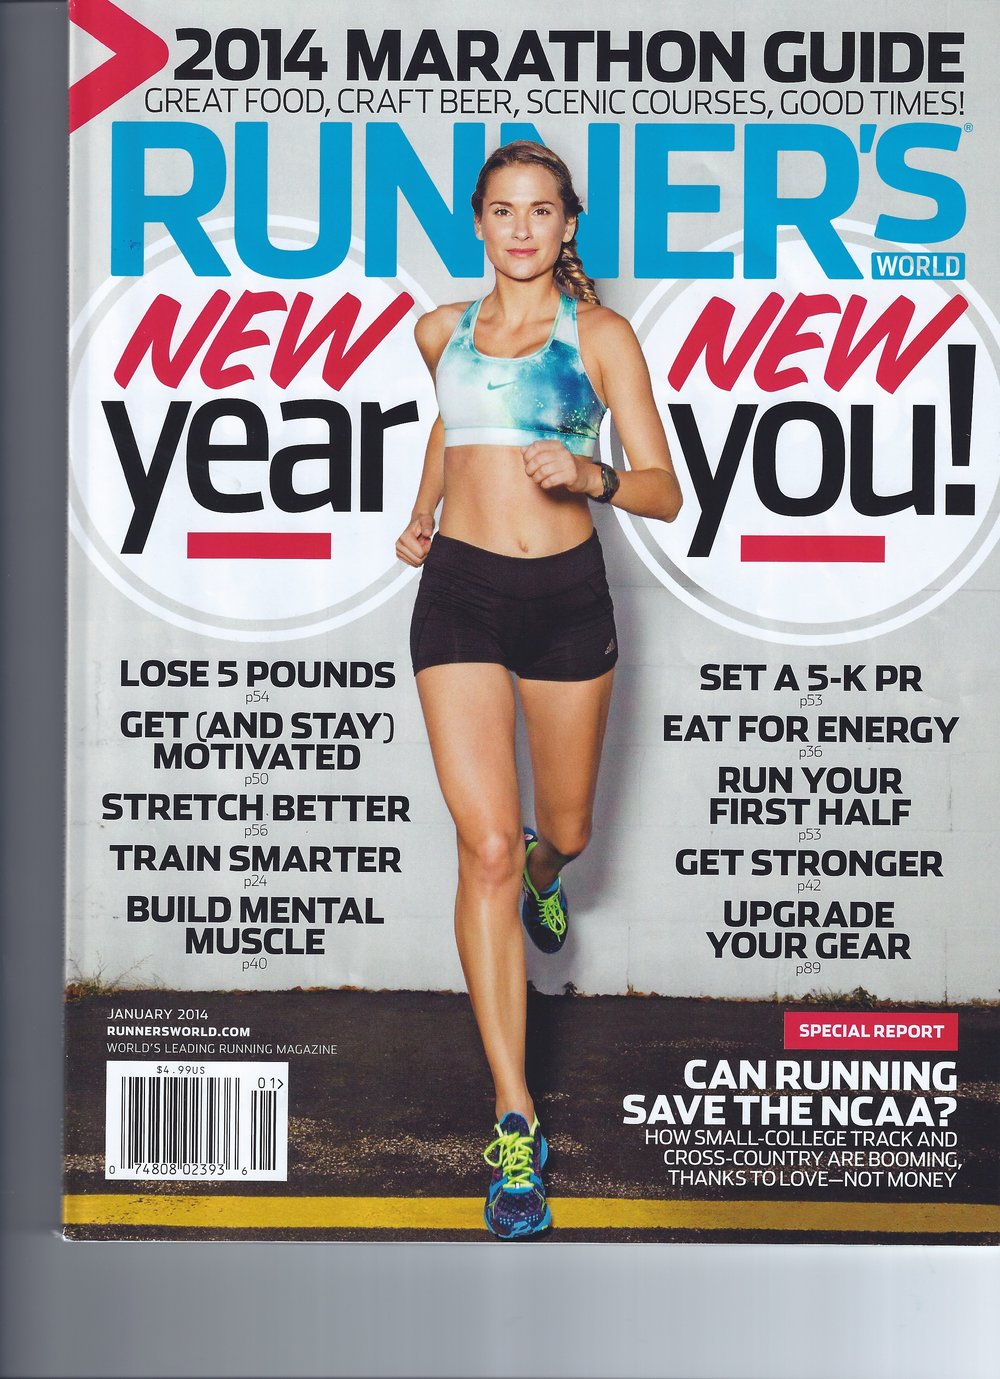 runners-world-cover-jan-2014.jpeg